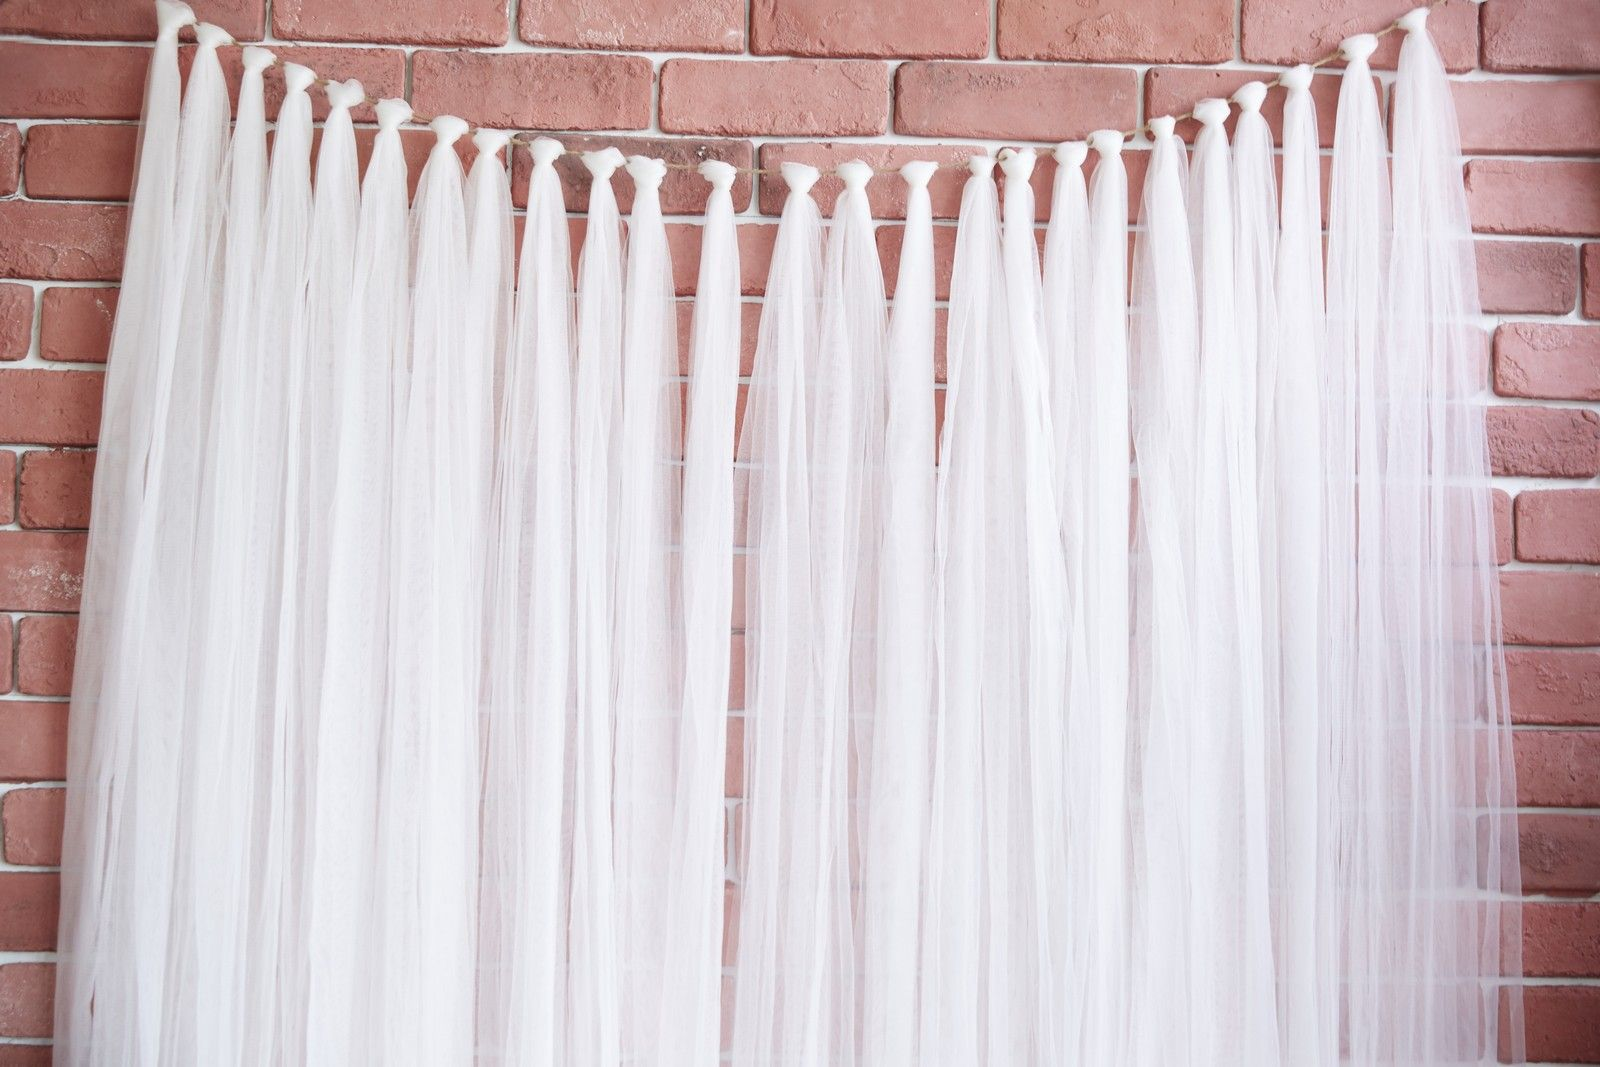 Diy Wedding Backdrop With Lights Tulle Strip Garland Backdrop Merrylove Weddings